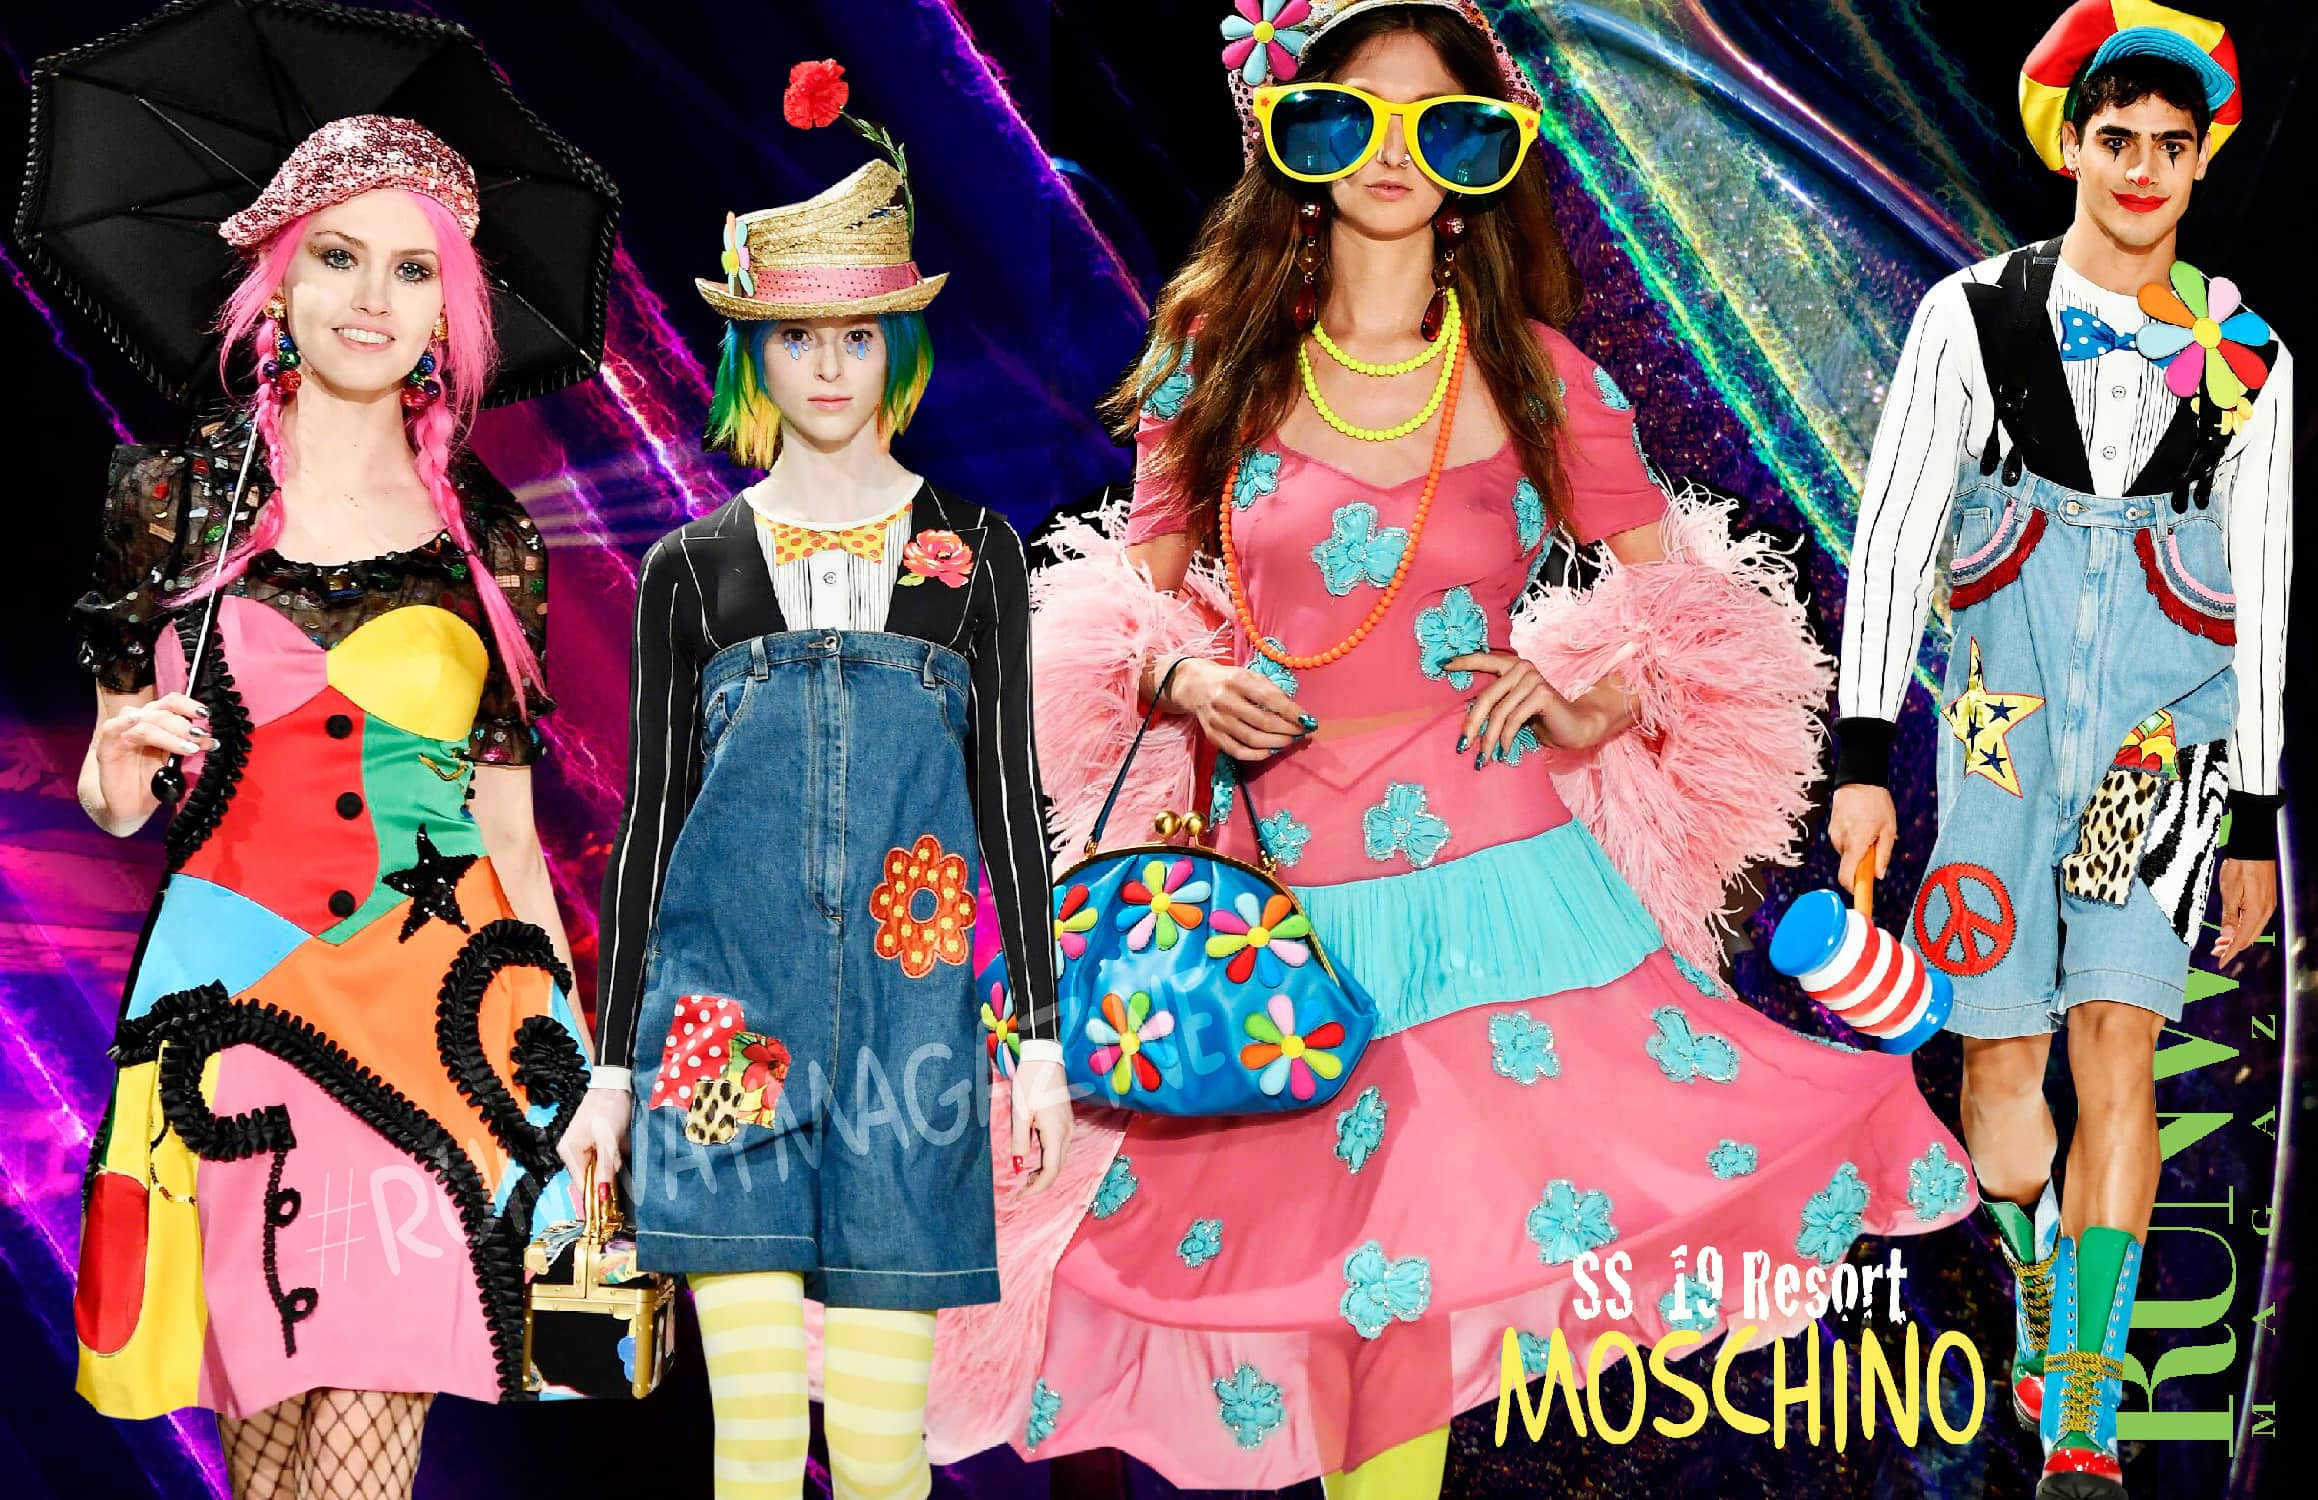 Moschino Circus Resort Summer 2019 by RUNWAY MAGAZINE